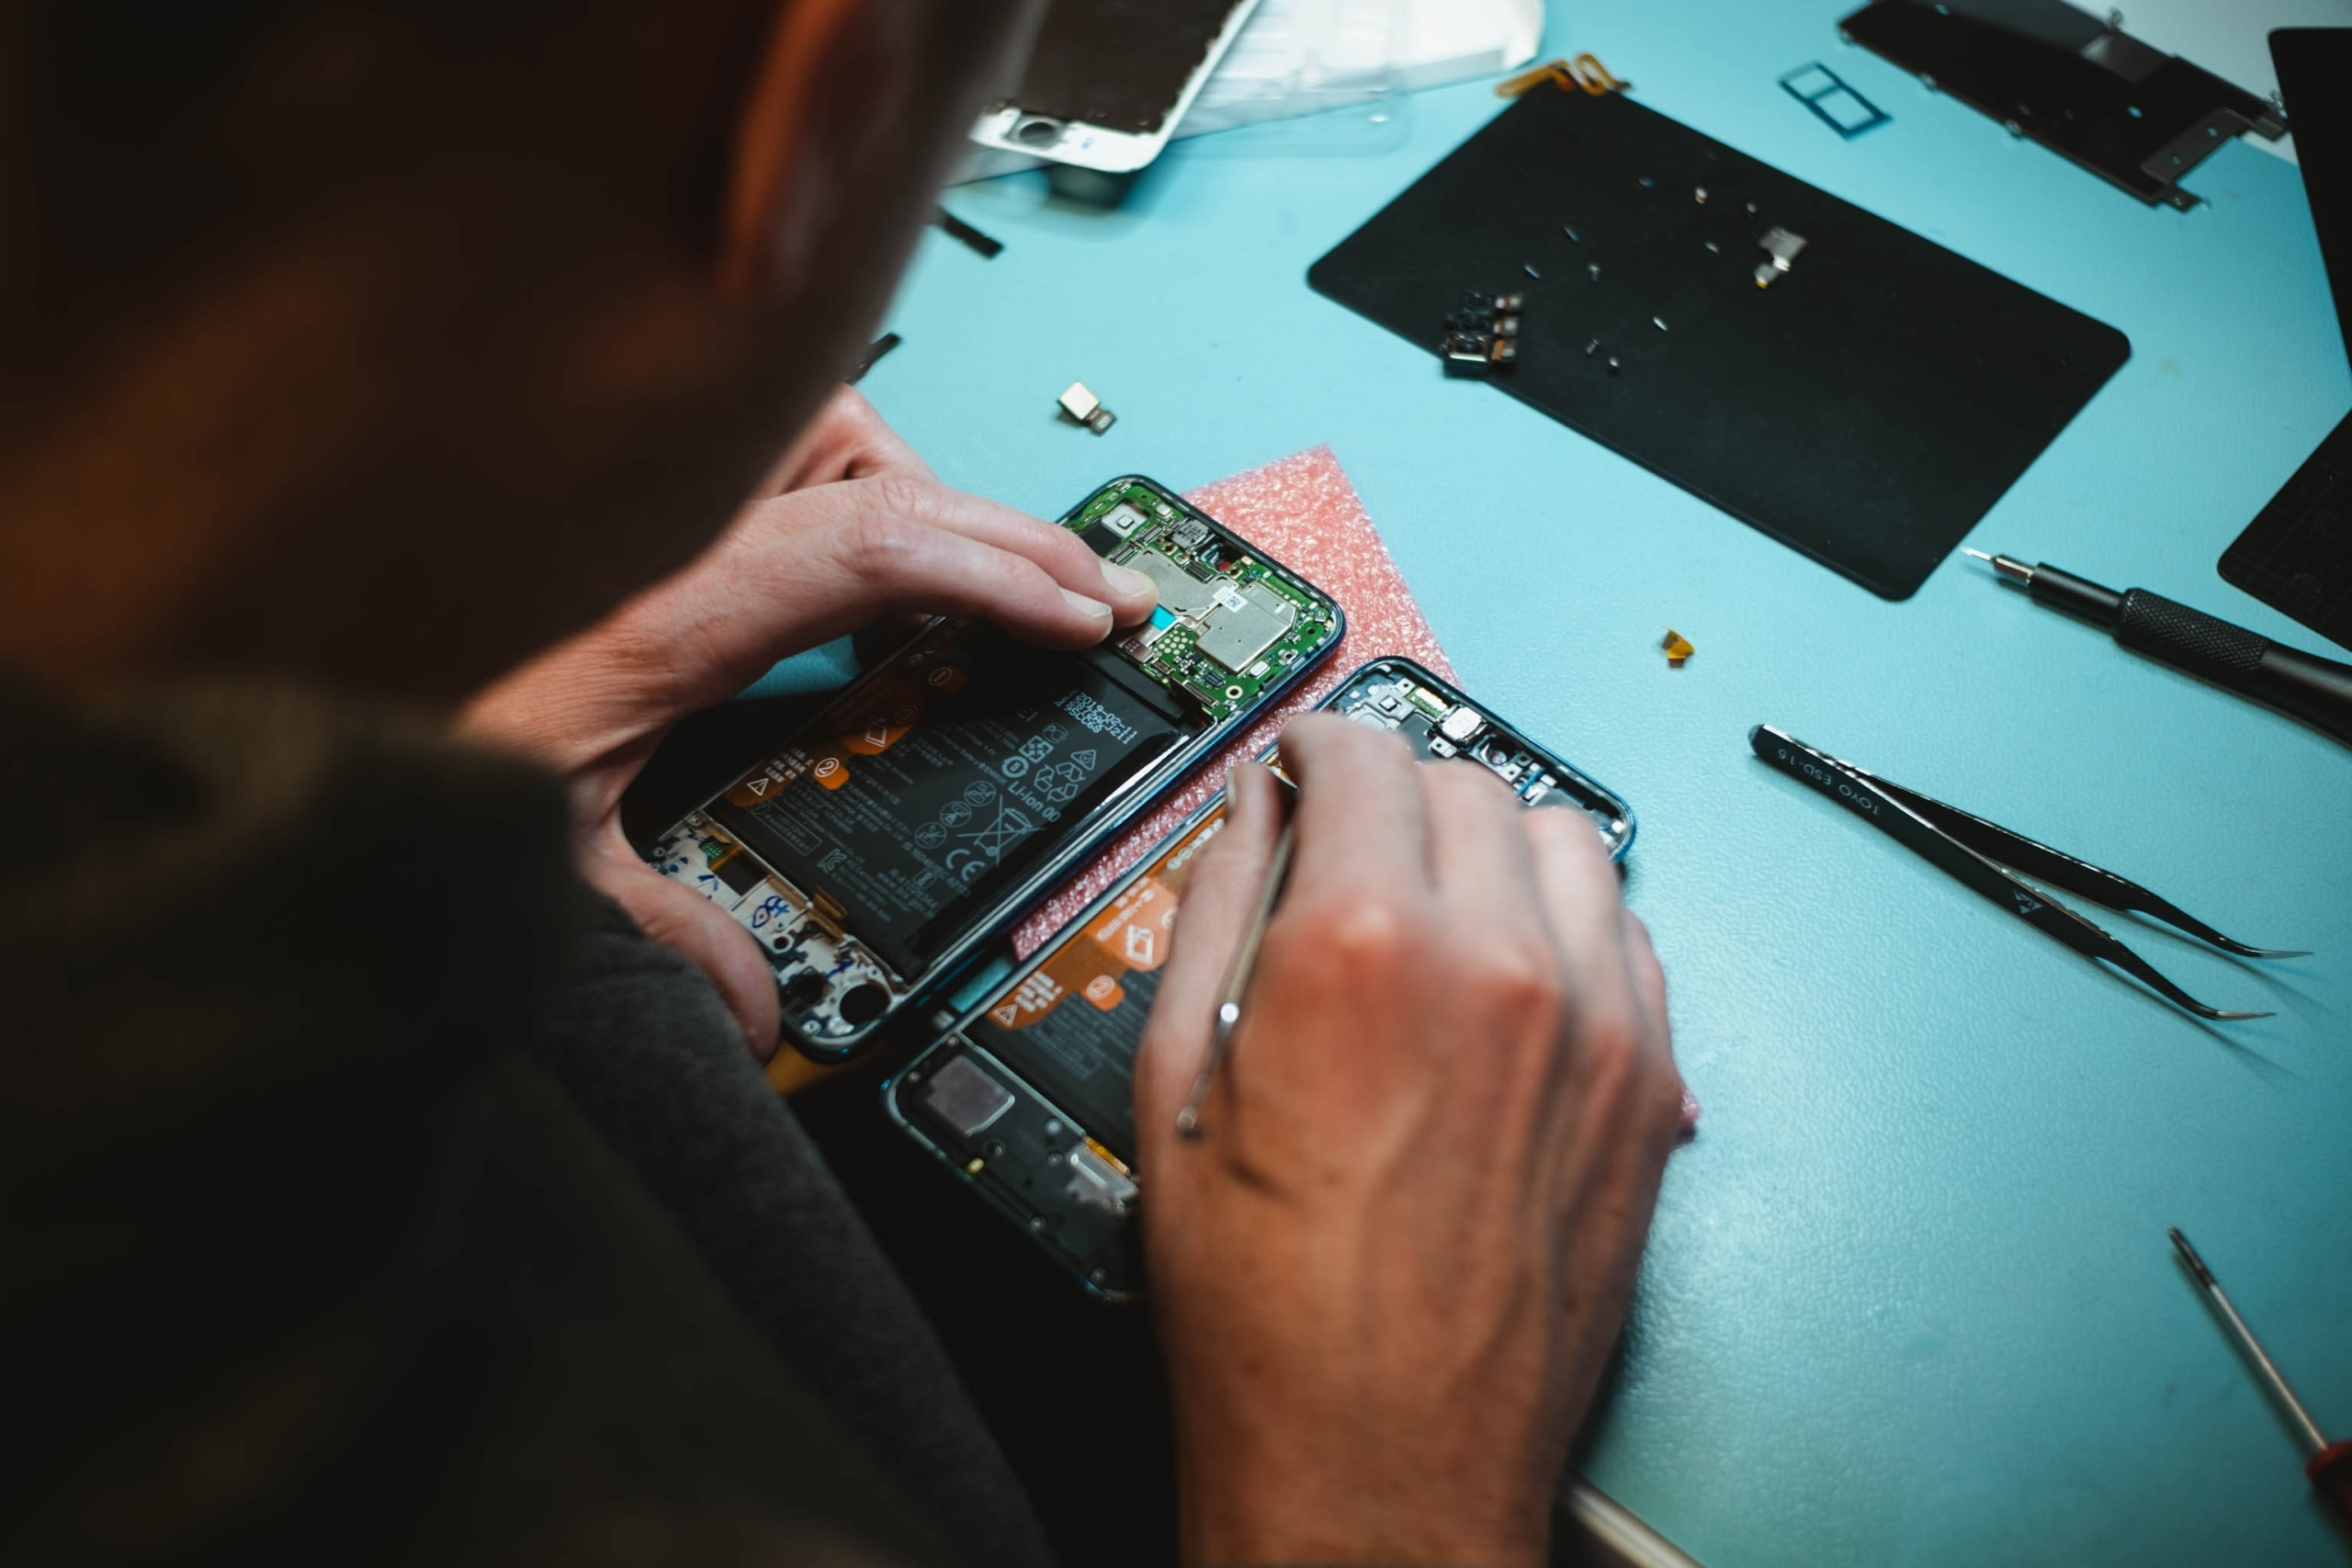 Should we have the right to repair our electronics?